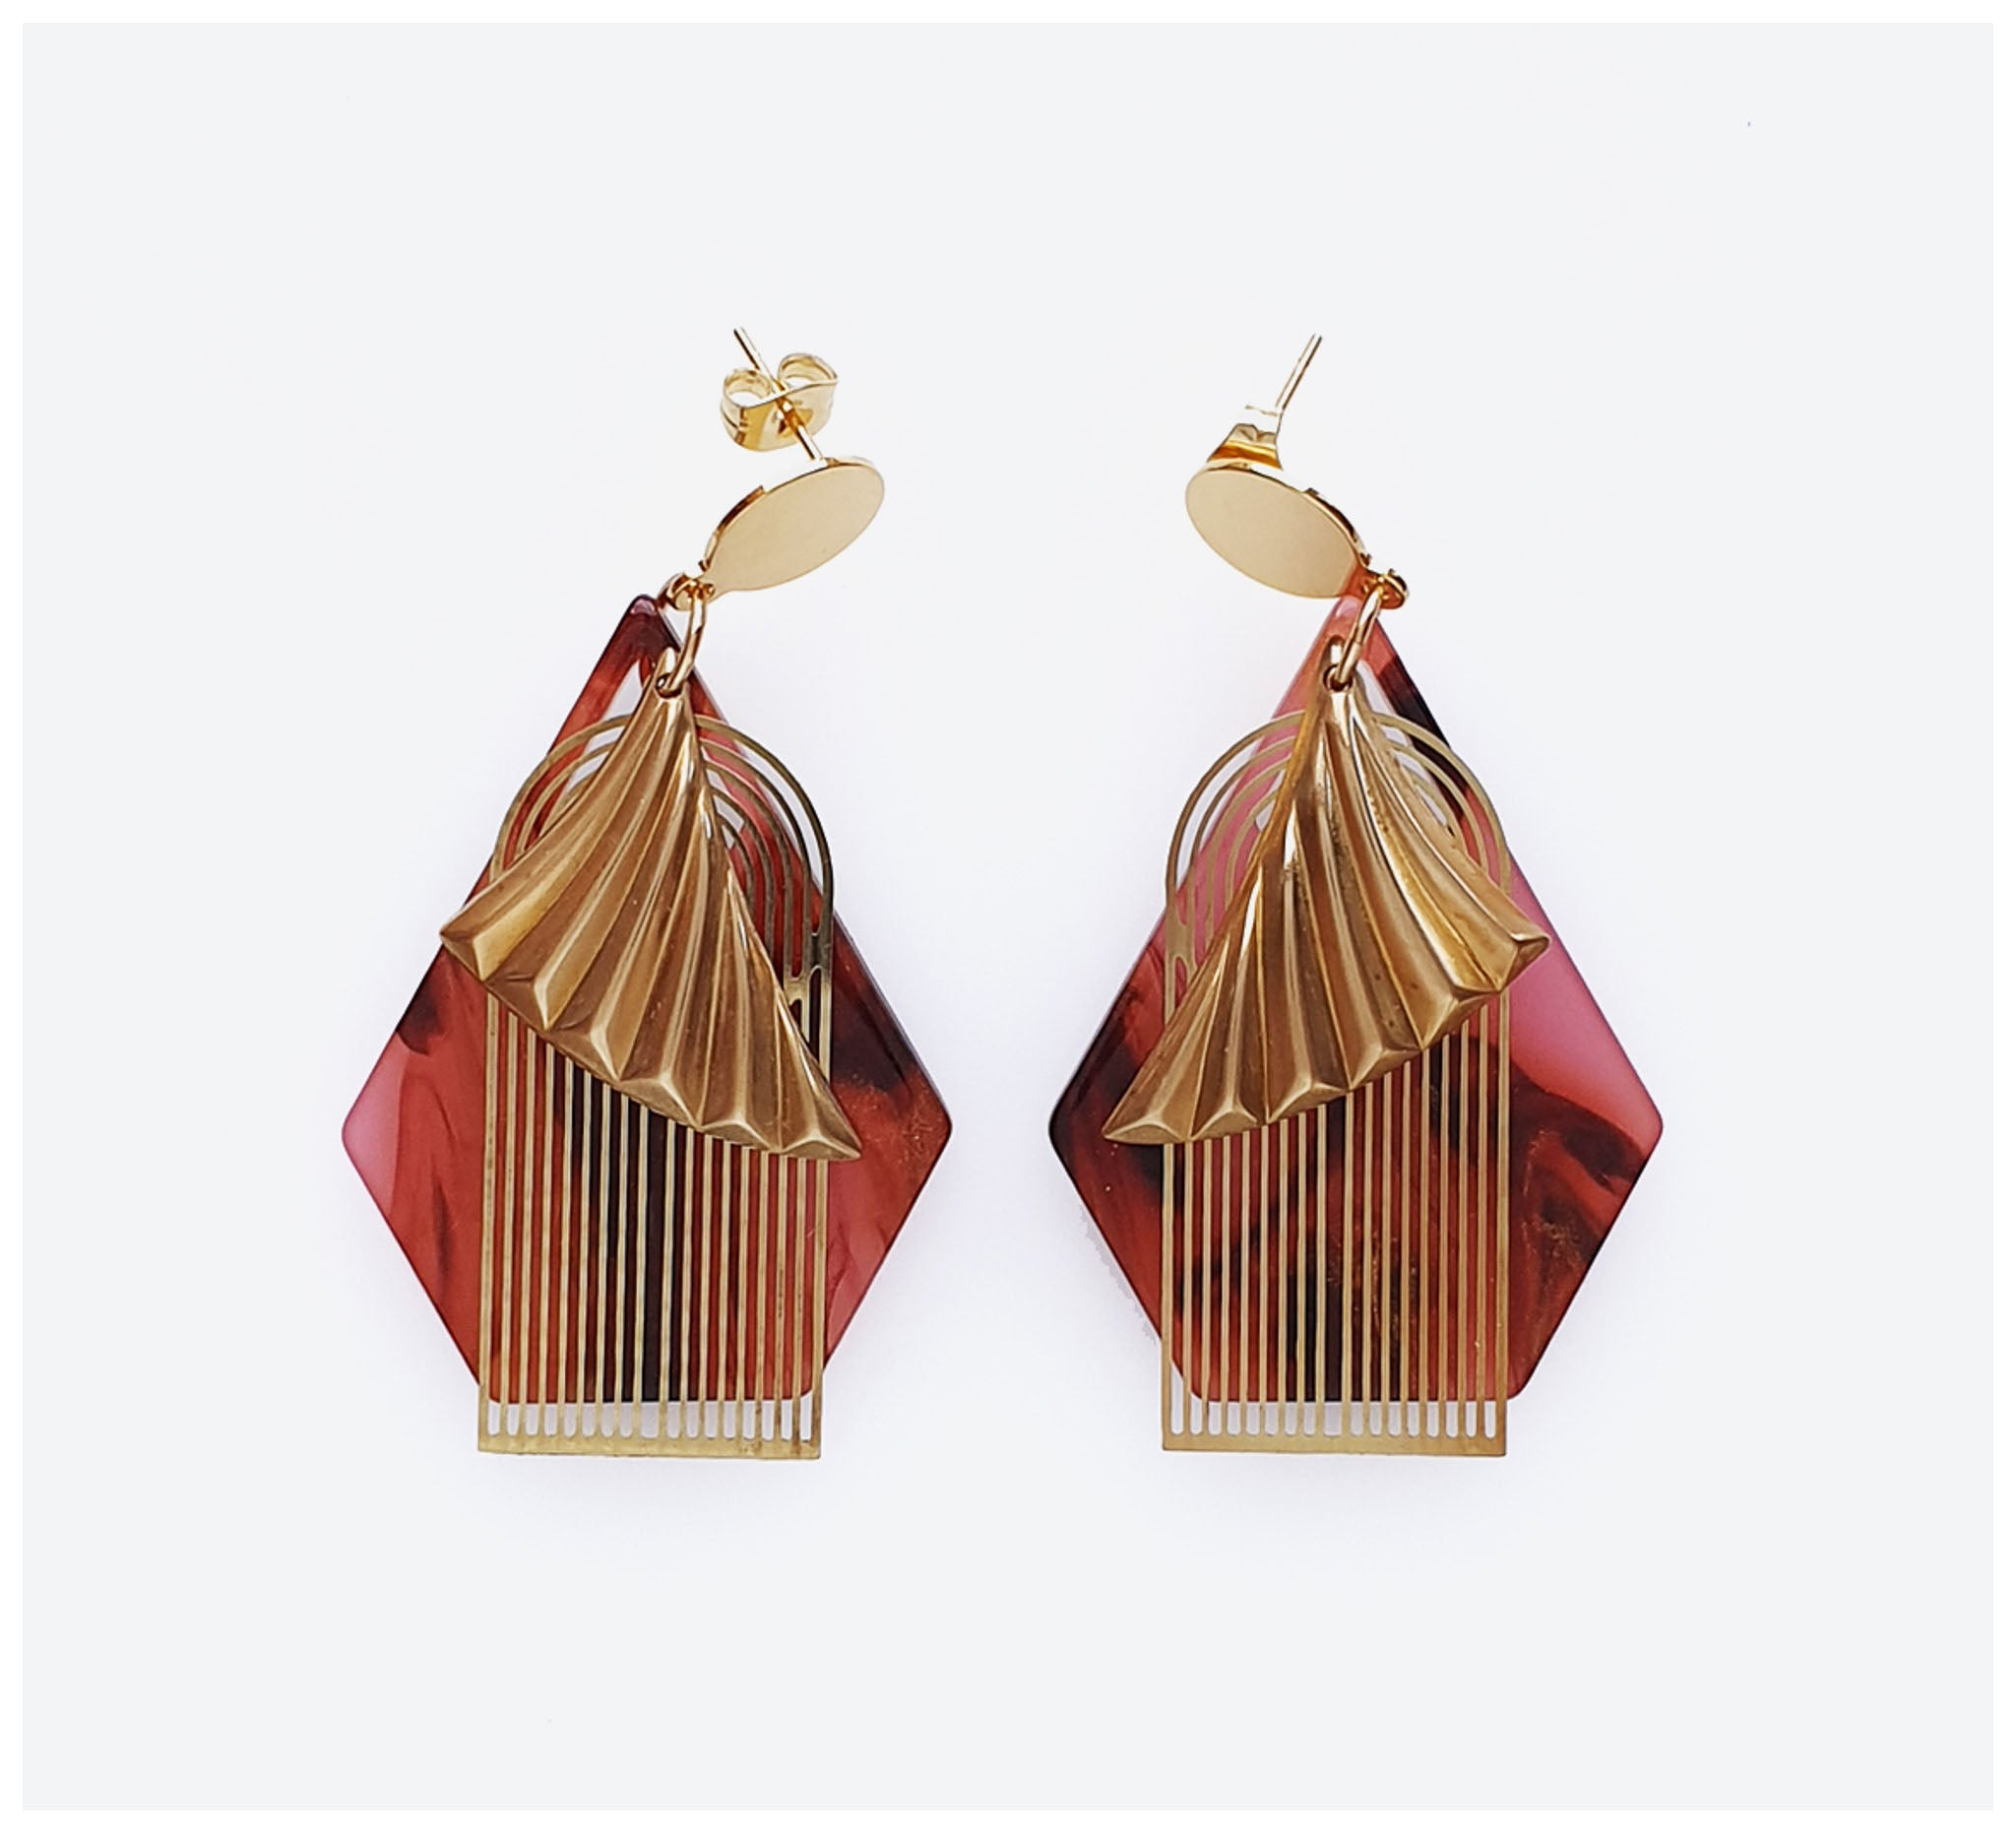 Middle Child - Waltz Earrings - Berry